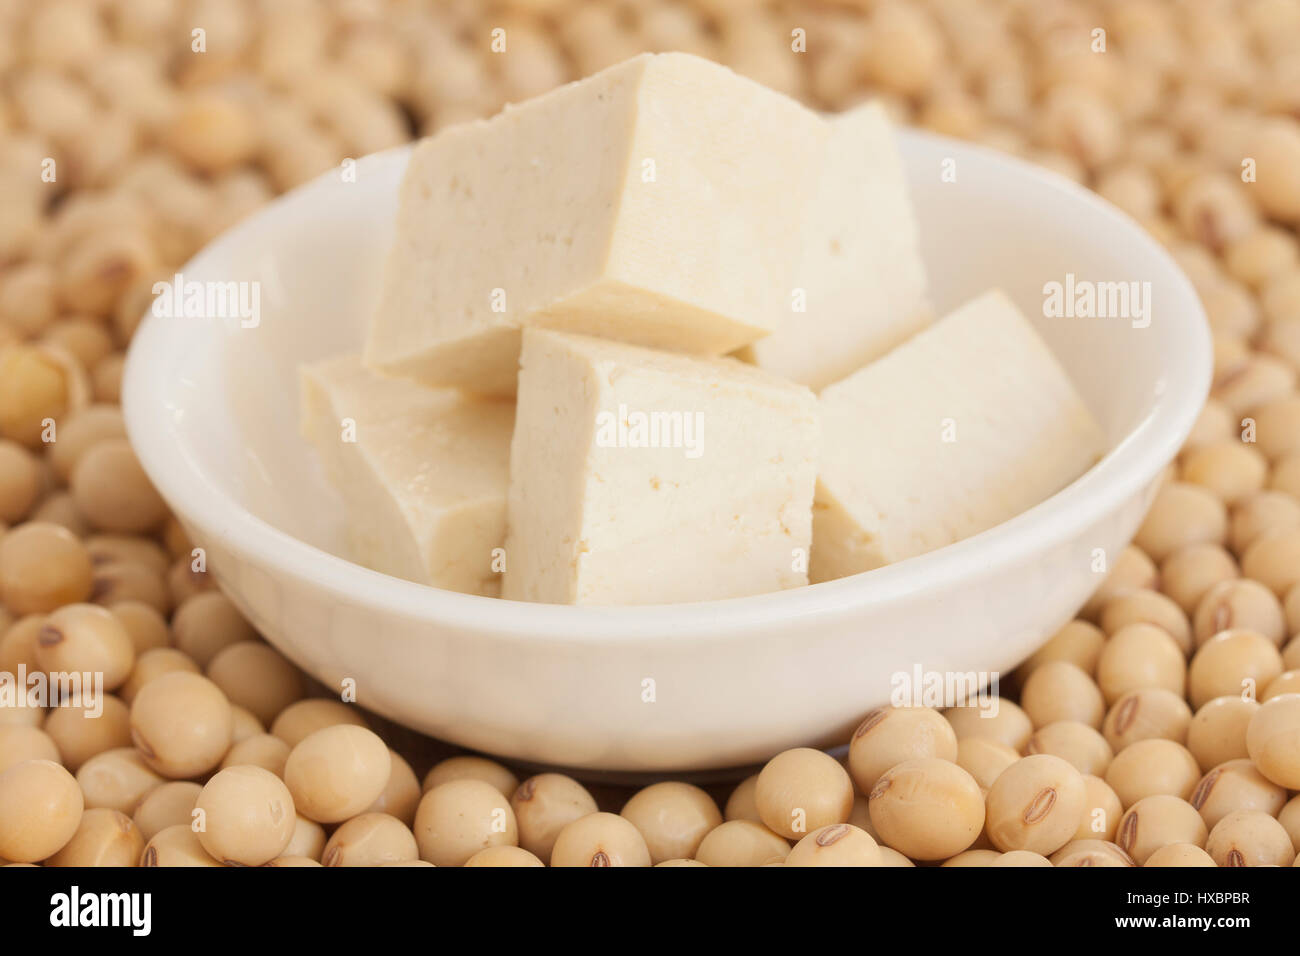 Variety of Soy Products: tofu and soya beans - Stock Image